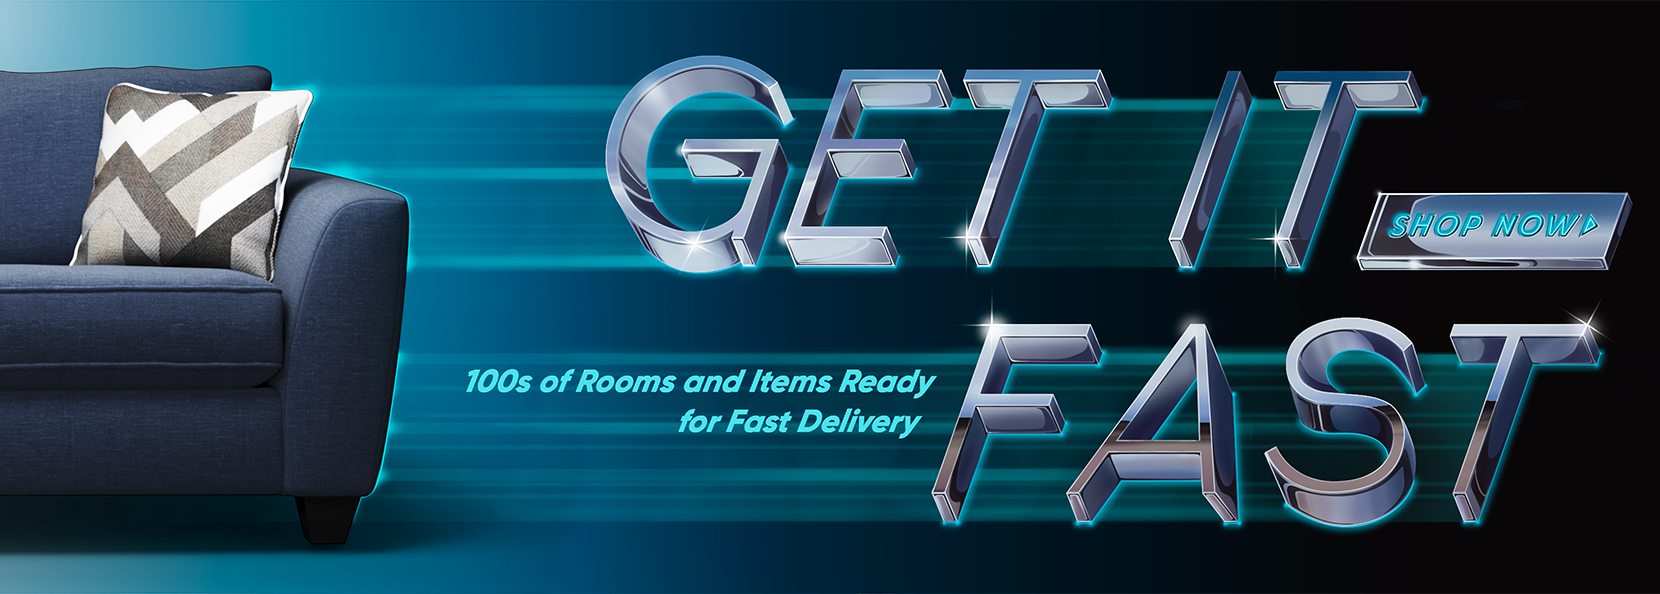 Get it fast. 100s of rooms and items ready for fast delivery